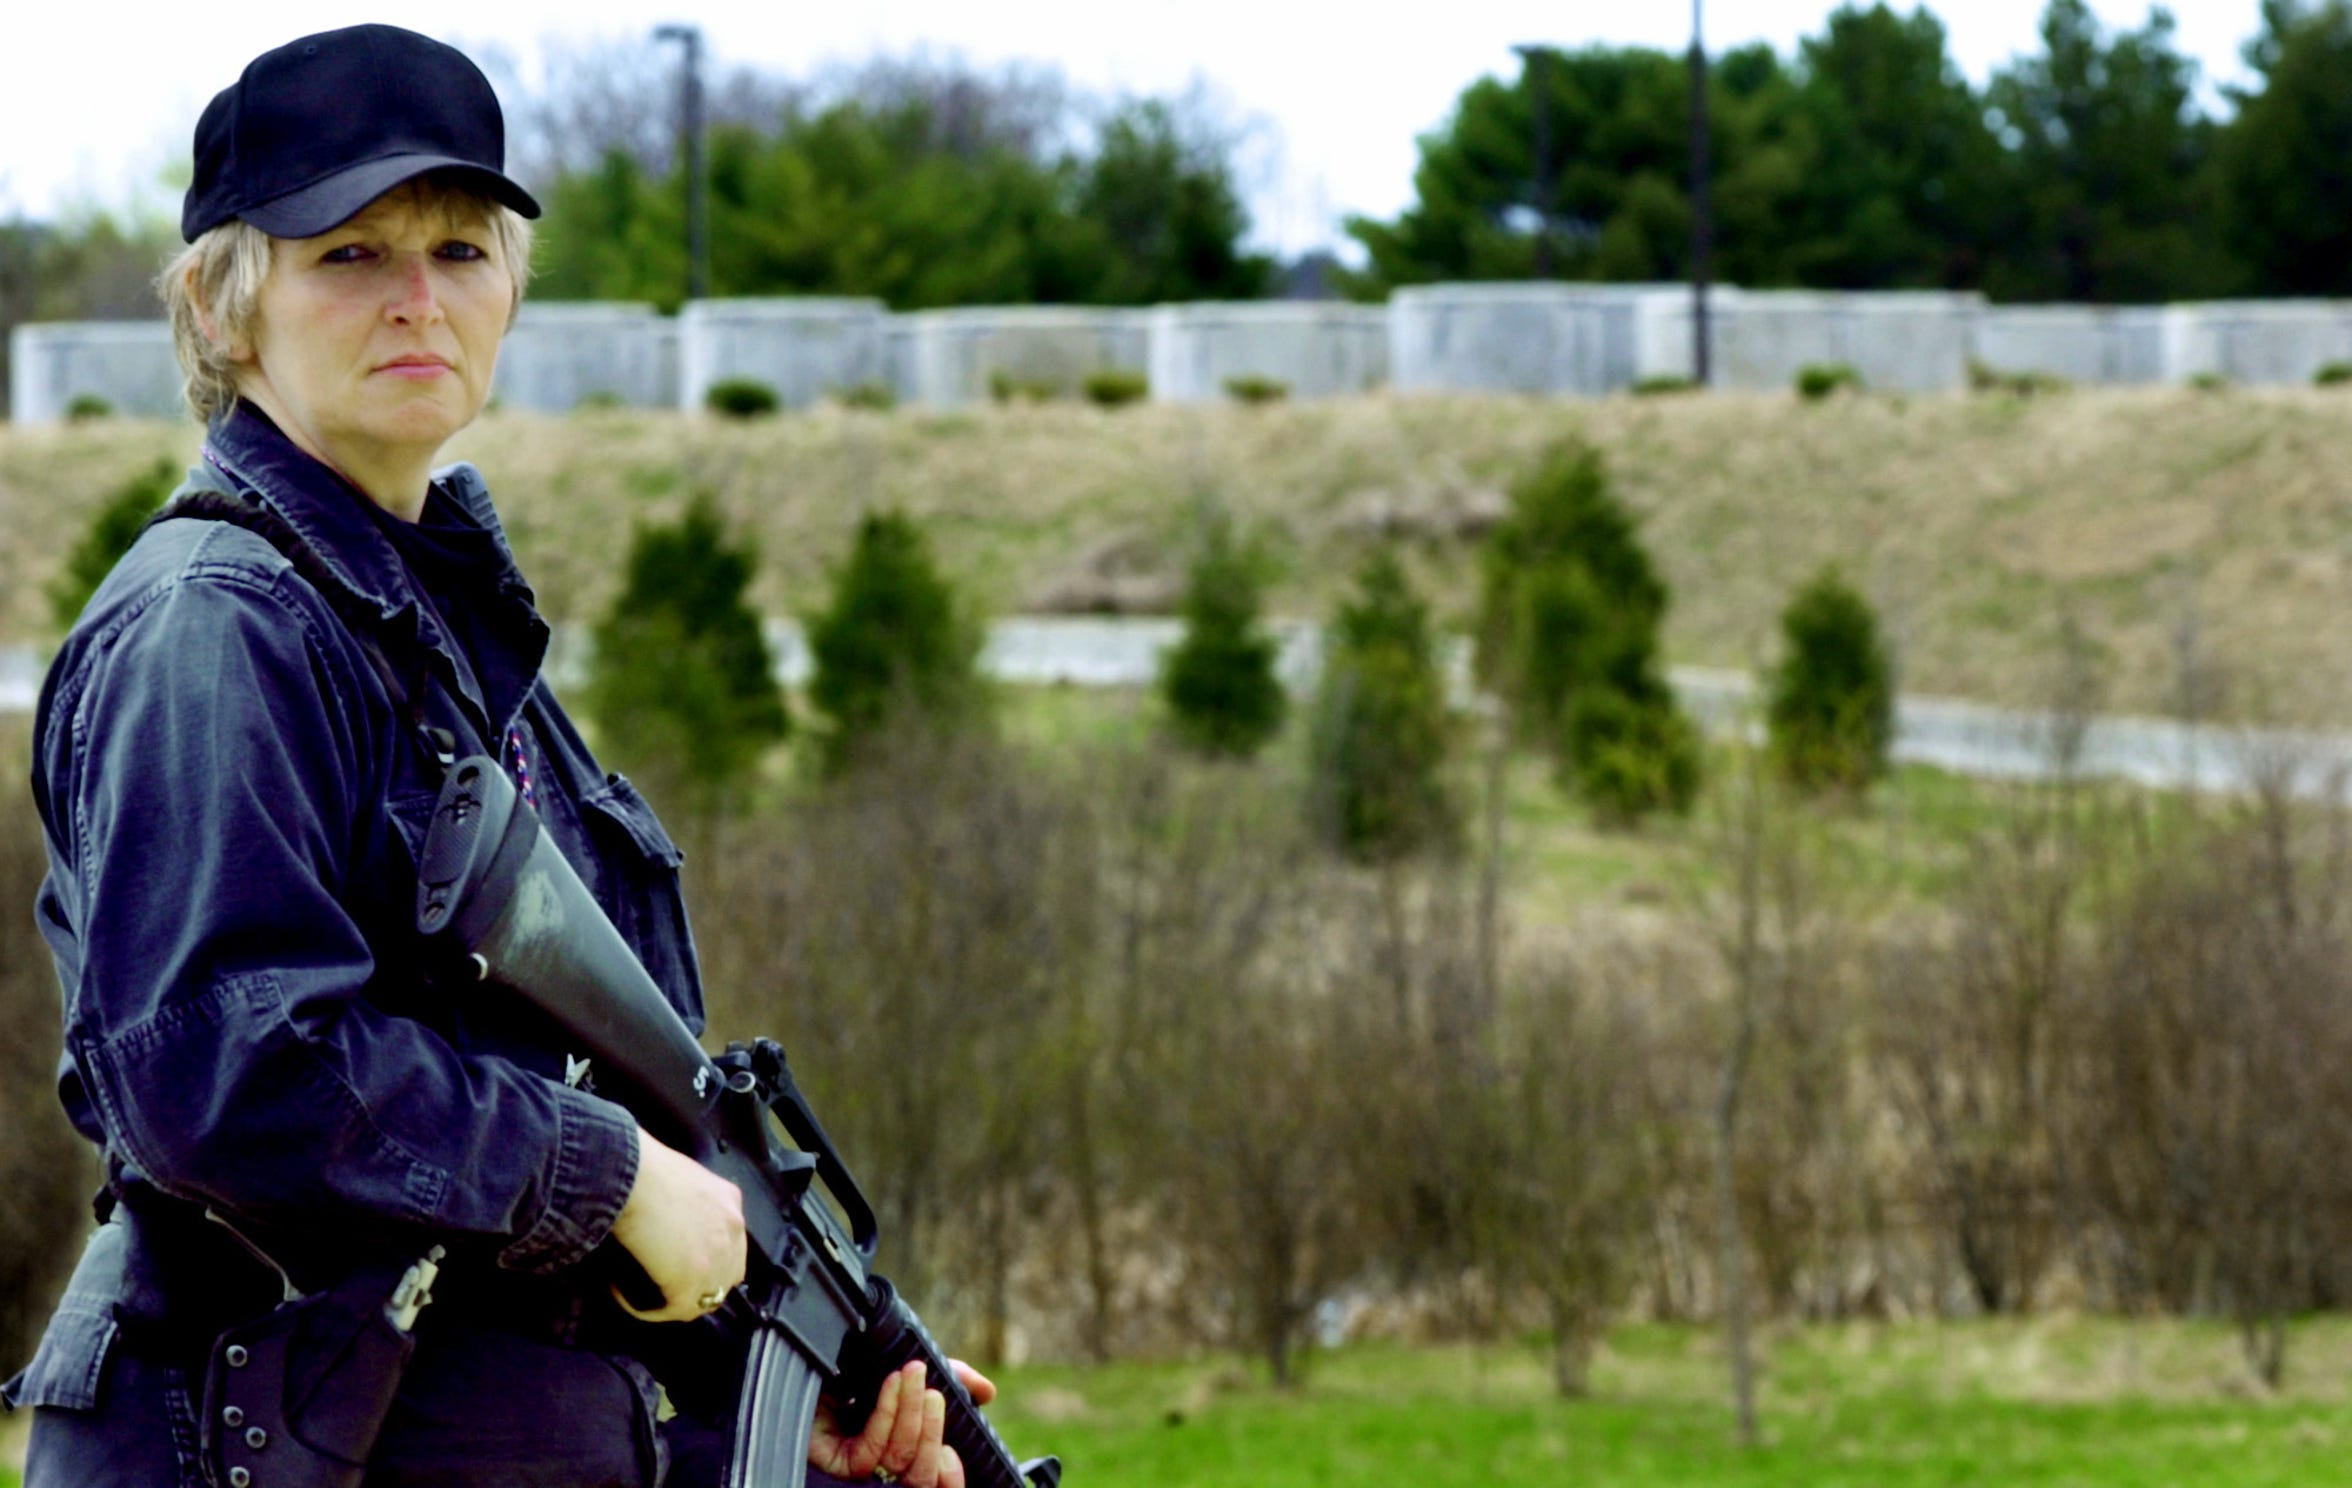 Theresa White of Gardiner, Maine, a security specialist at the former Maine Yankee nuclear power plant stands guard in Wiscasset, Maine, on Thursday, May 5, 2005. Spent fuel rods are stored in steel and concrete containers in the  background.